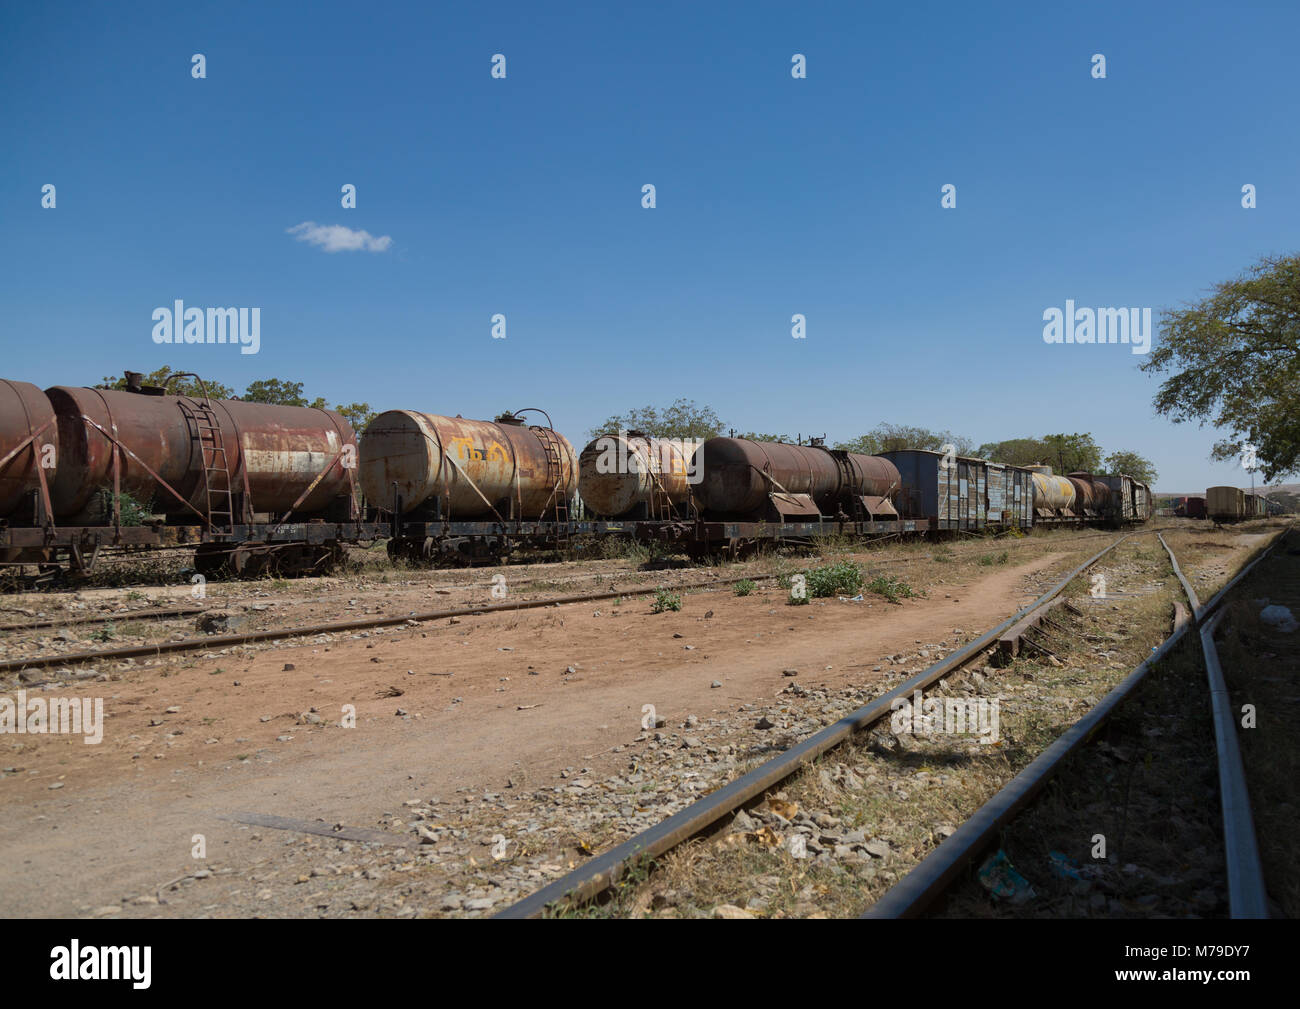 Tracks of the ethio-djibouti railway station, Dire dawa region, Dire dawa, Ethiopia - Stock Image